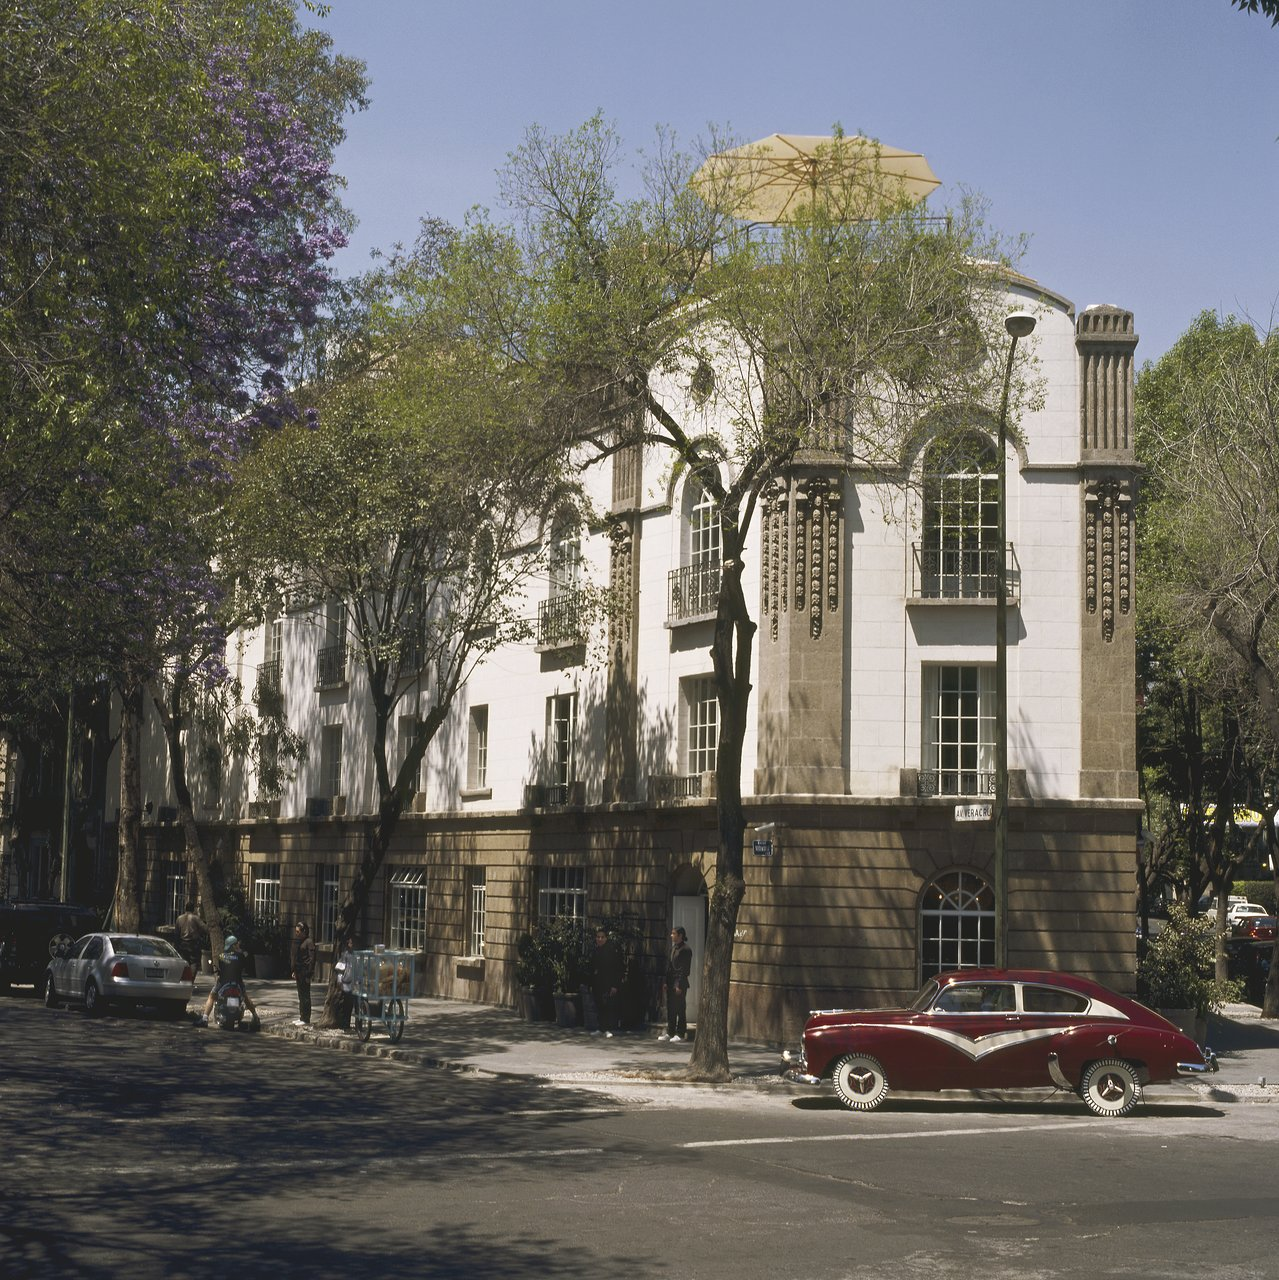 The 10 Closest Hotels To El Circulo Teatral Mexico City